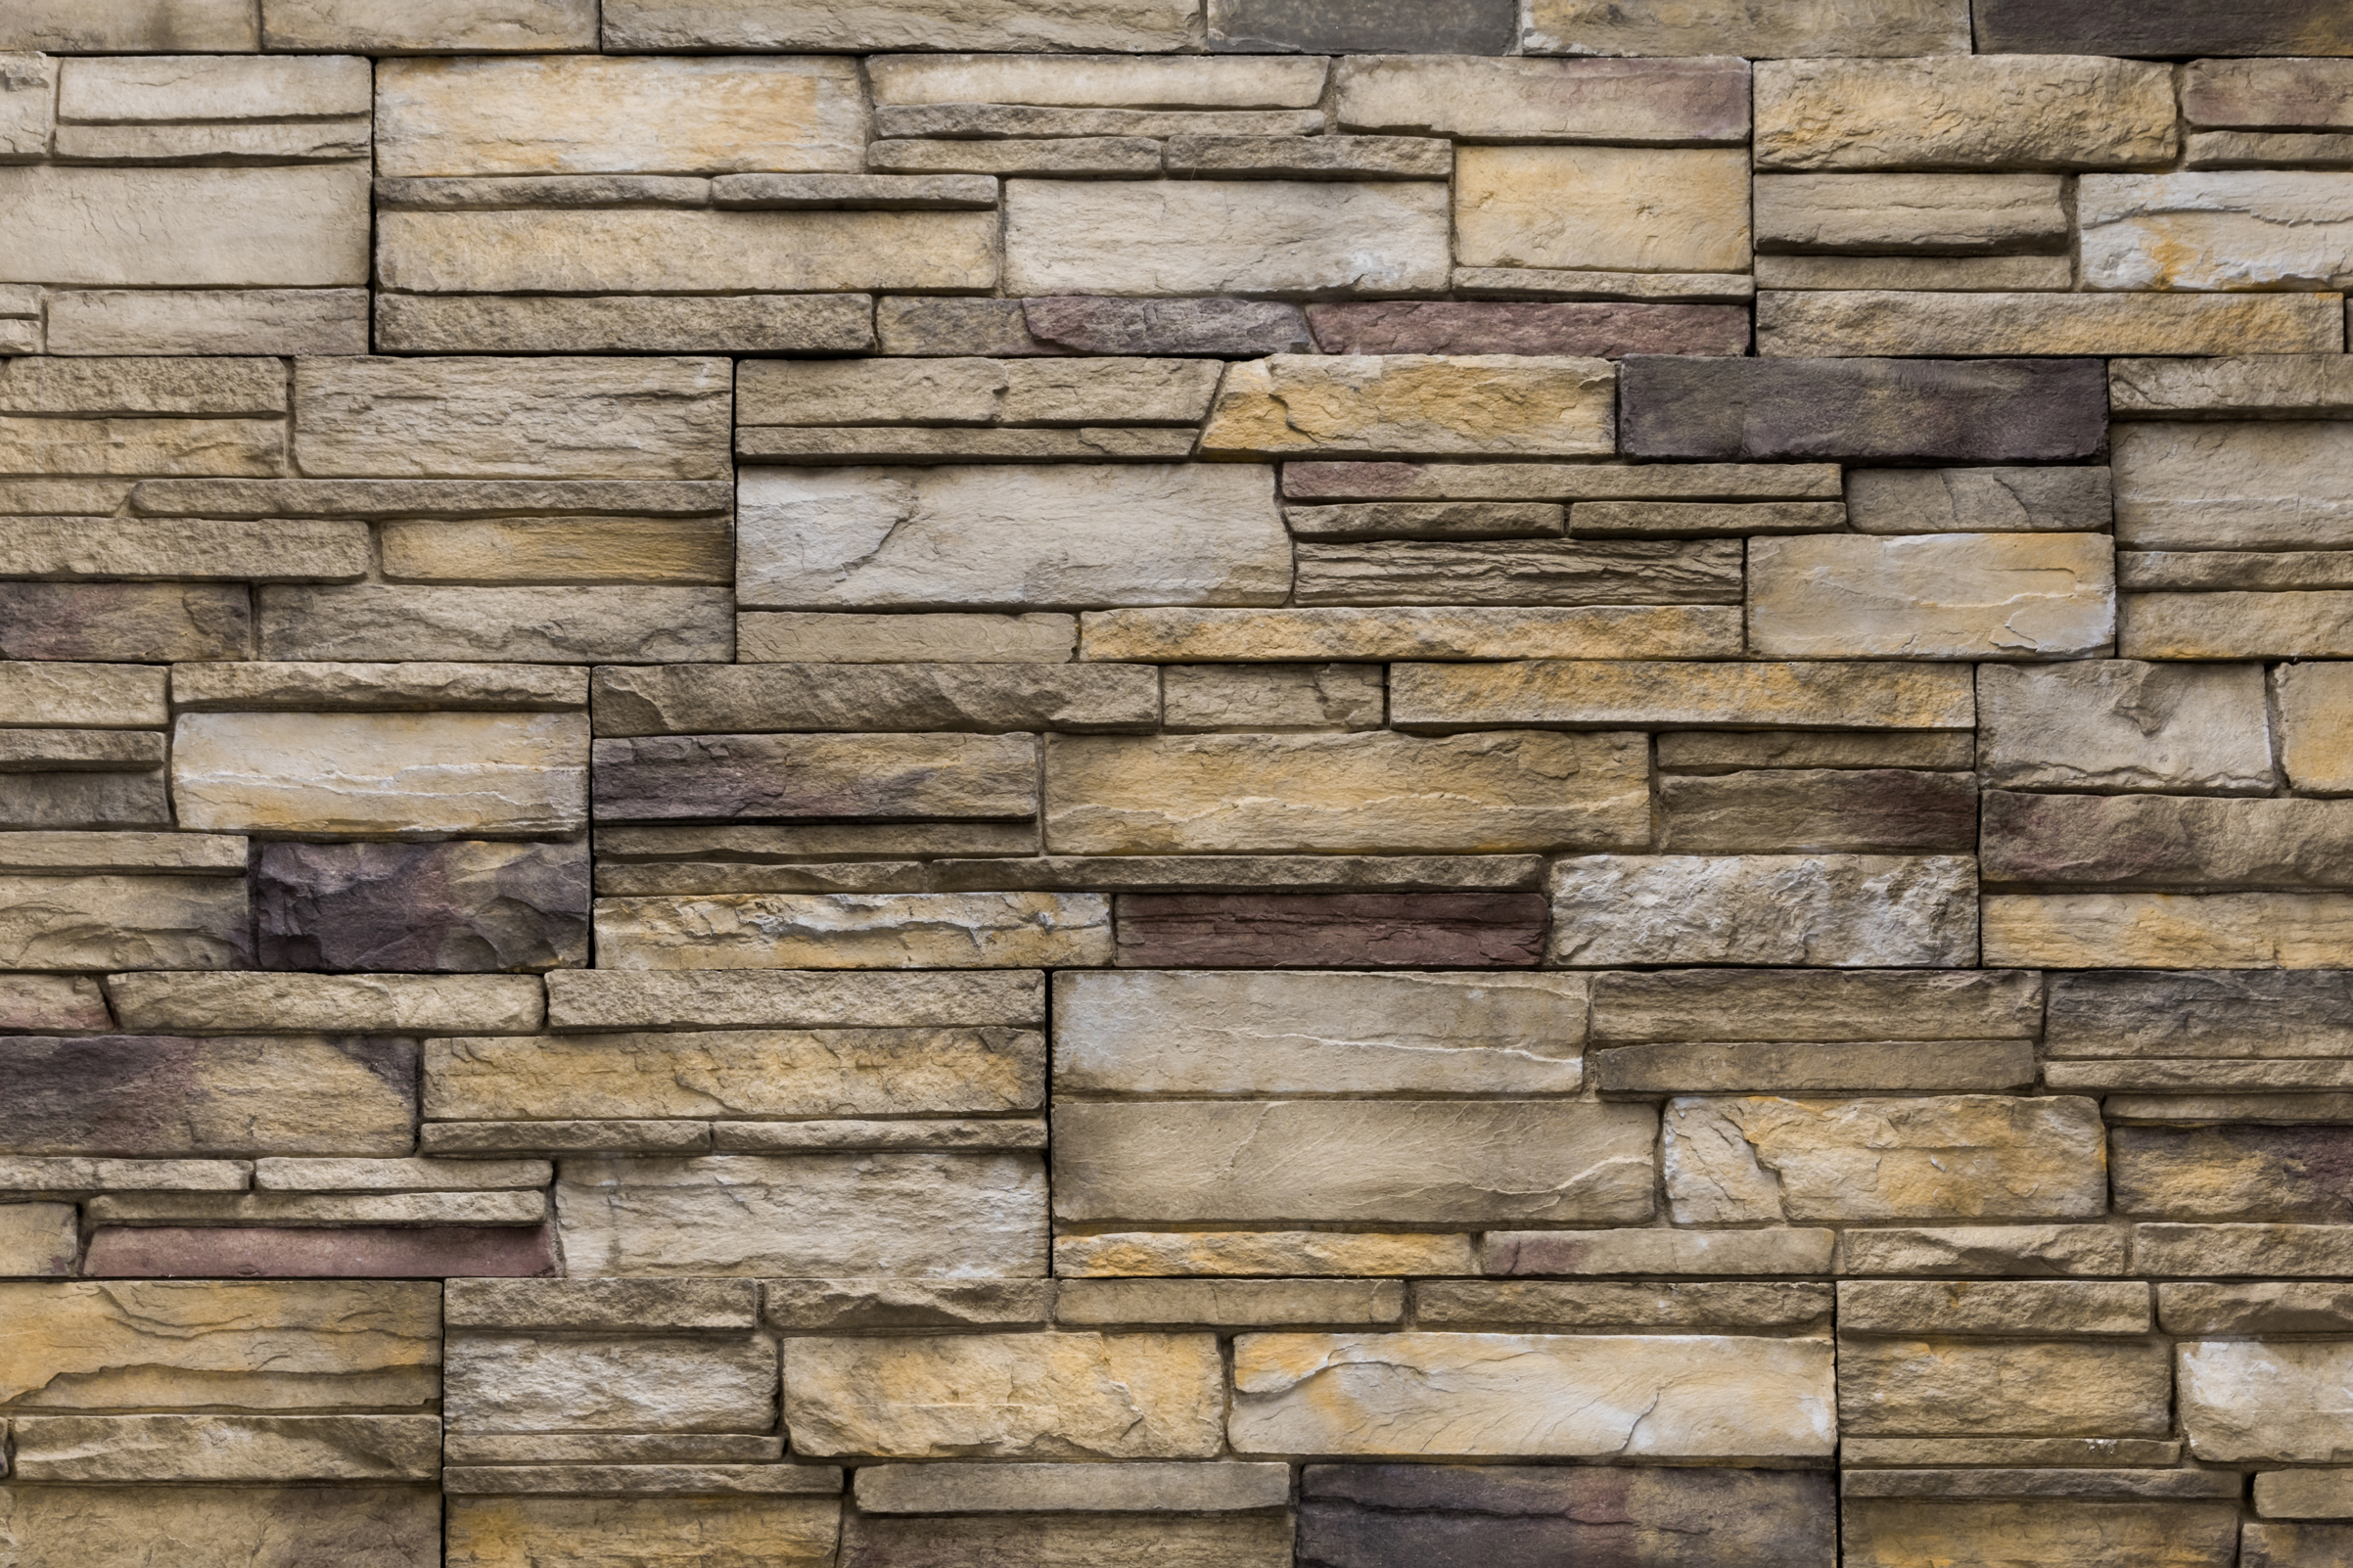 Ledgestone Pattern Mortarless Panelized Stone Veneer I